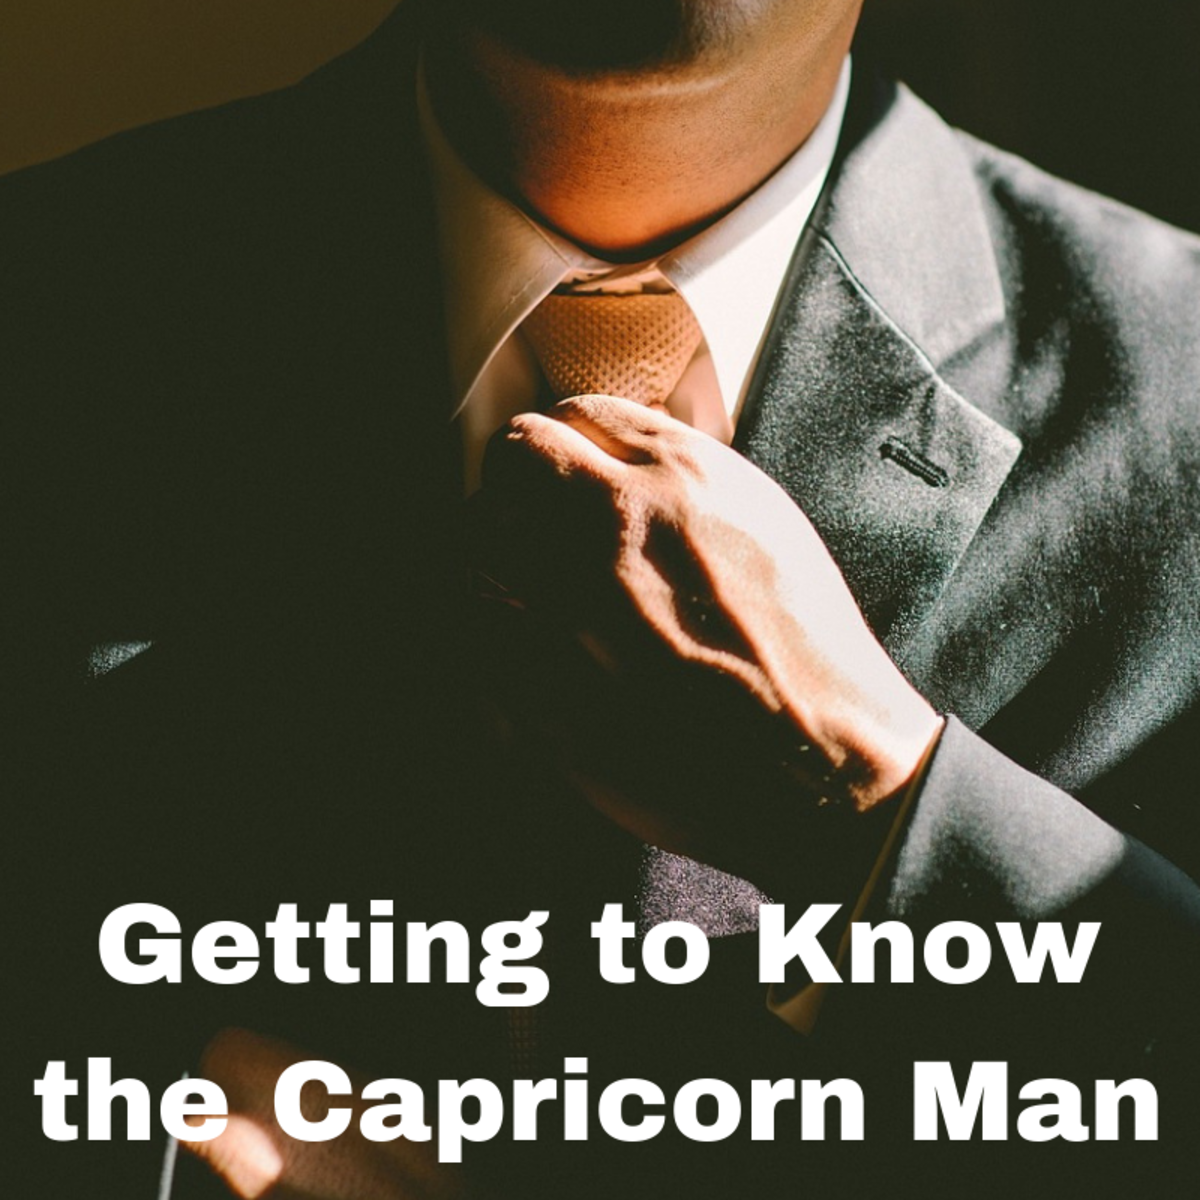 Cancer hookup a capricorn male traits